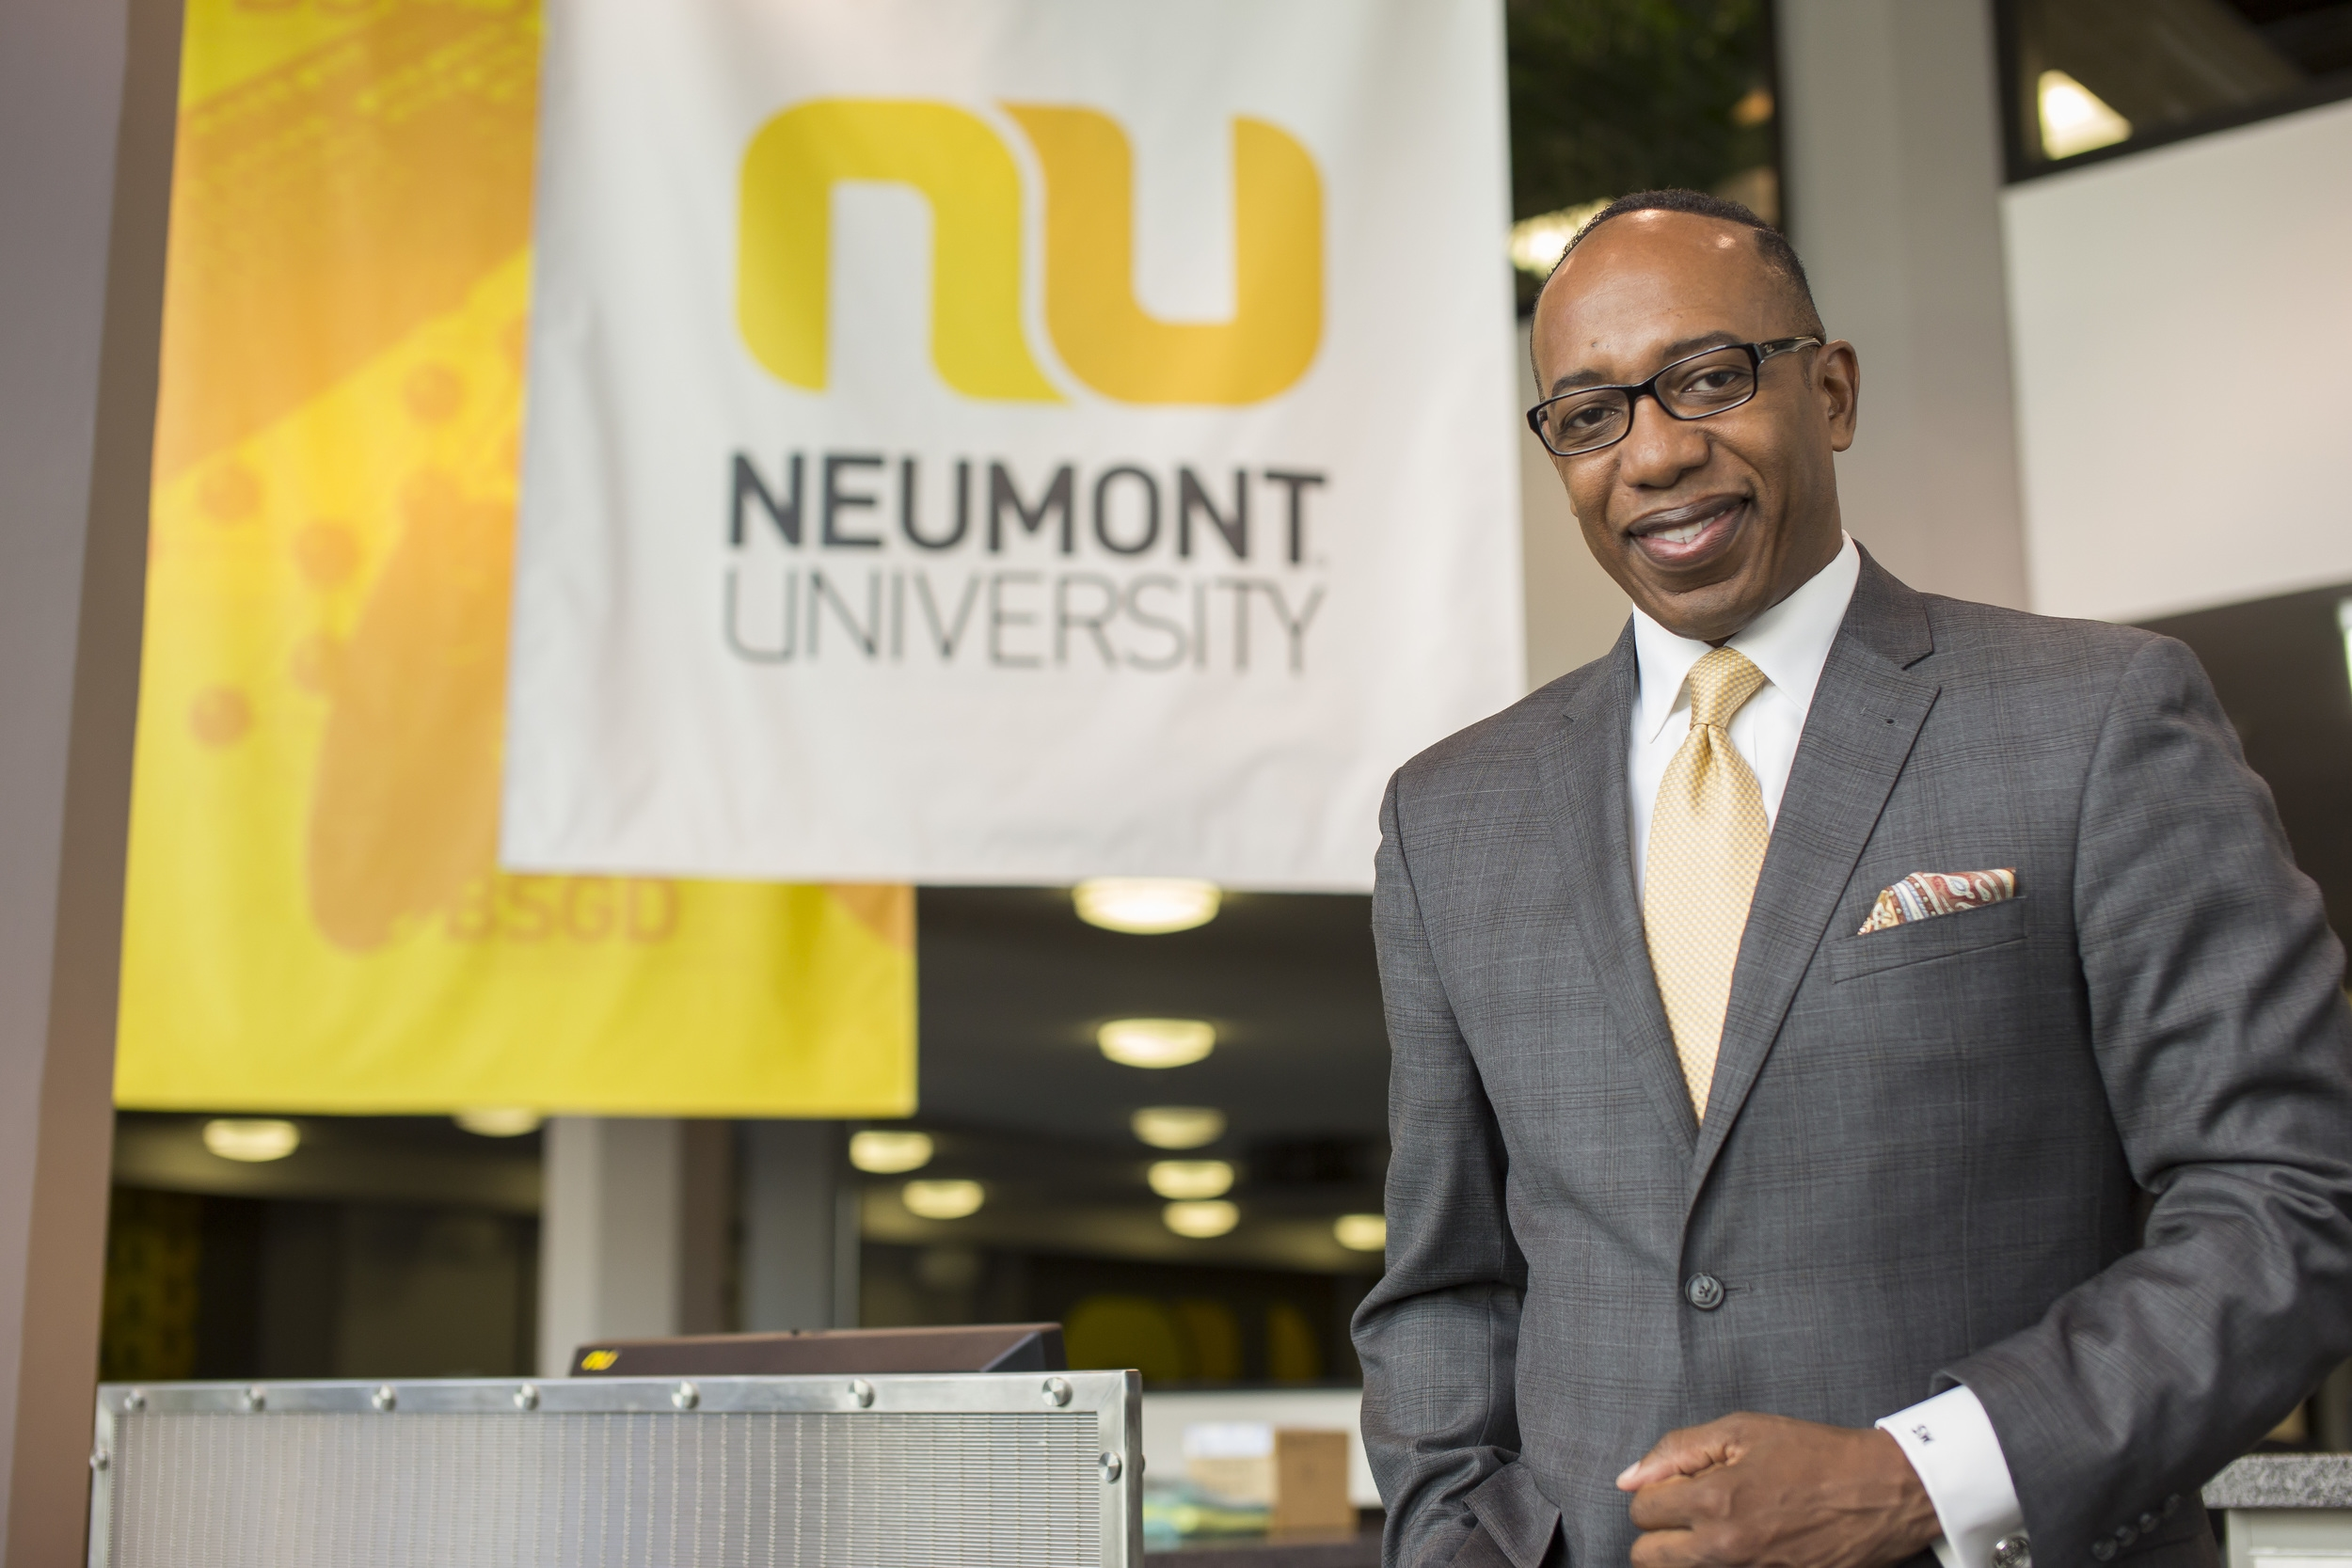 Shaun McAlmont joined Neumont University in July 2015.